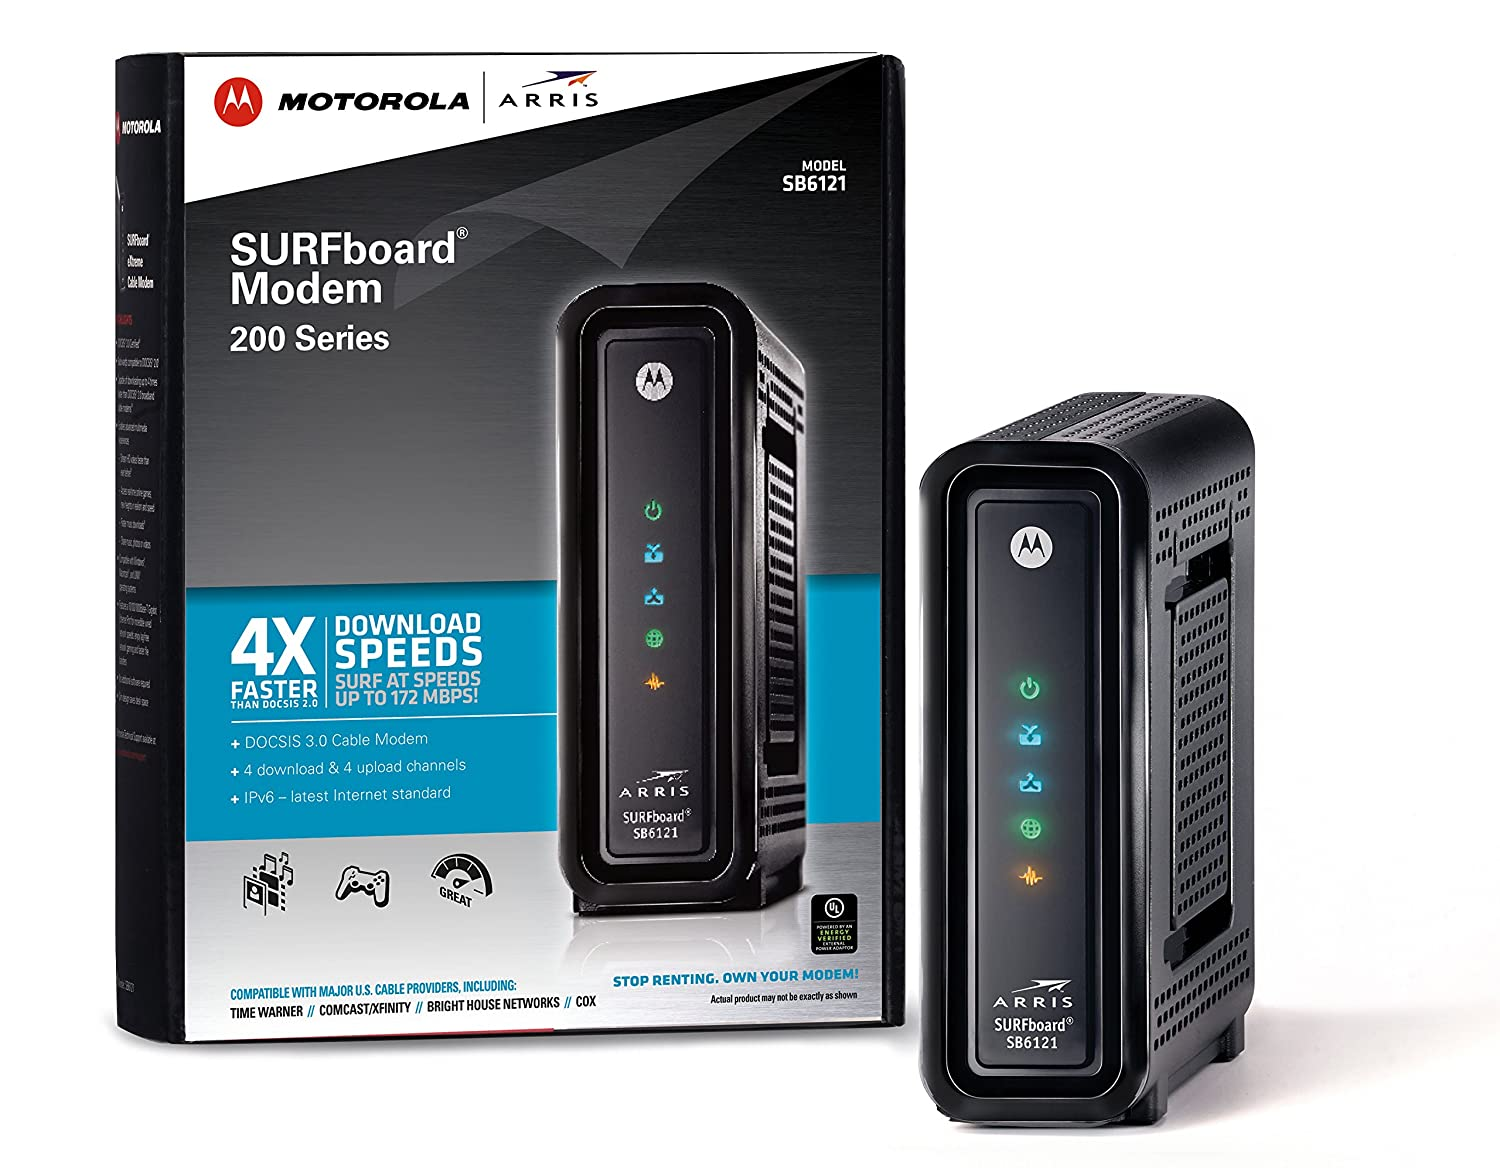 ARRIS SURFboard SB6121 DOCSIS 3.0 Cable Modem (Black,Retail Packaging)